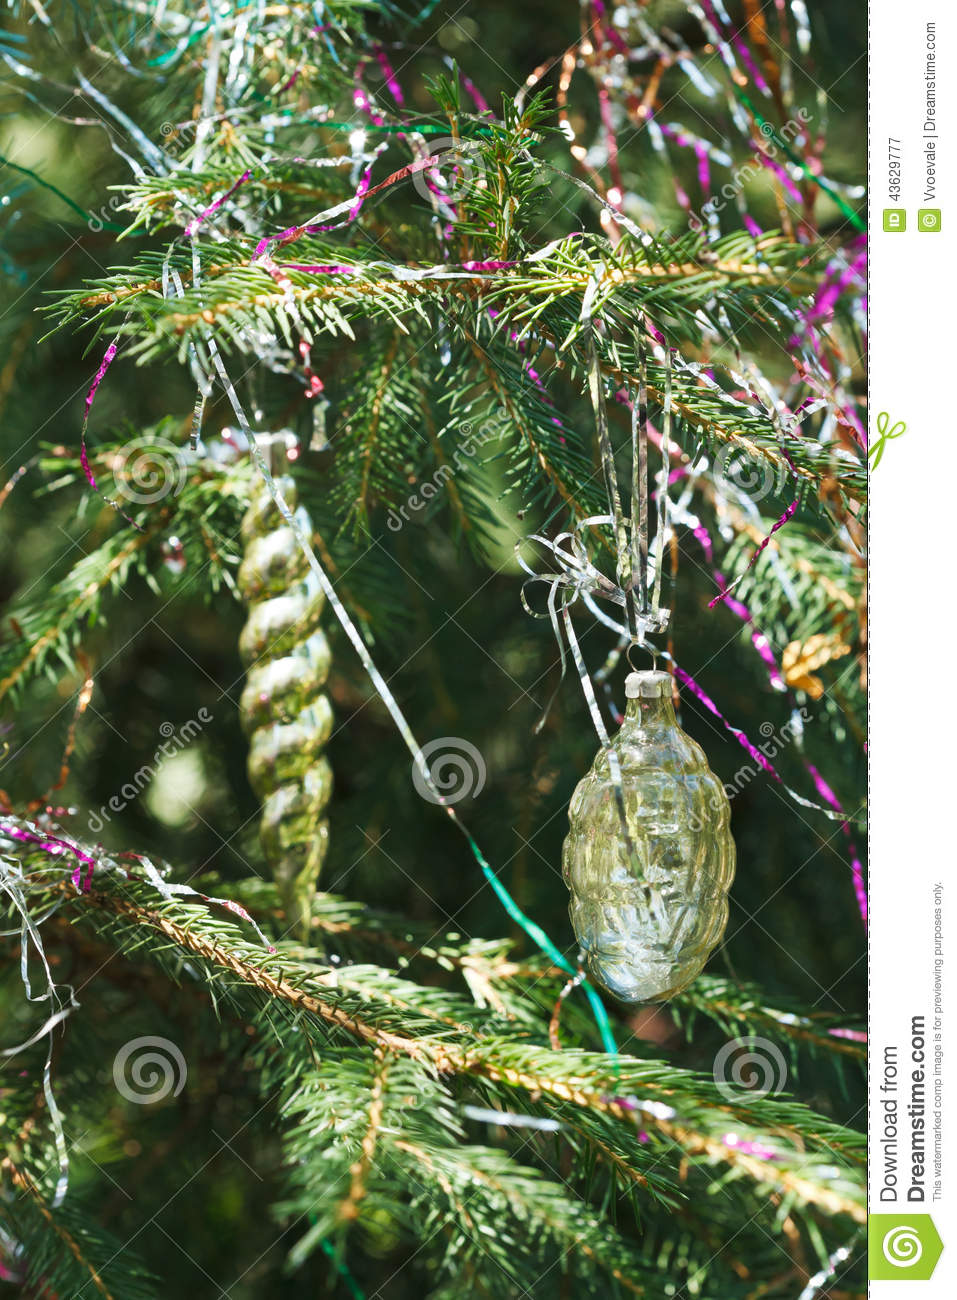 download old glass cone and icicle christmas decoration stock image image of needle xmas - Icicle Christmas Decorations